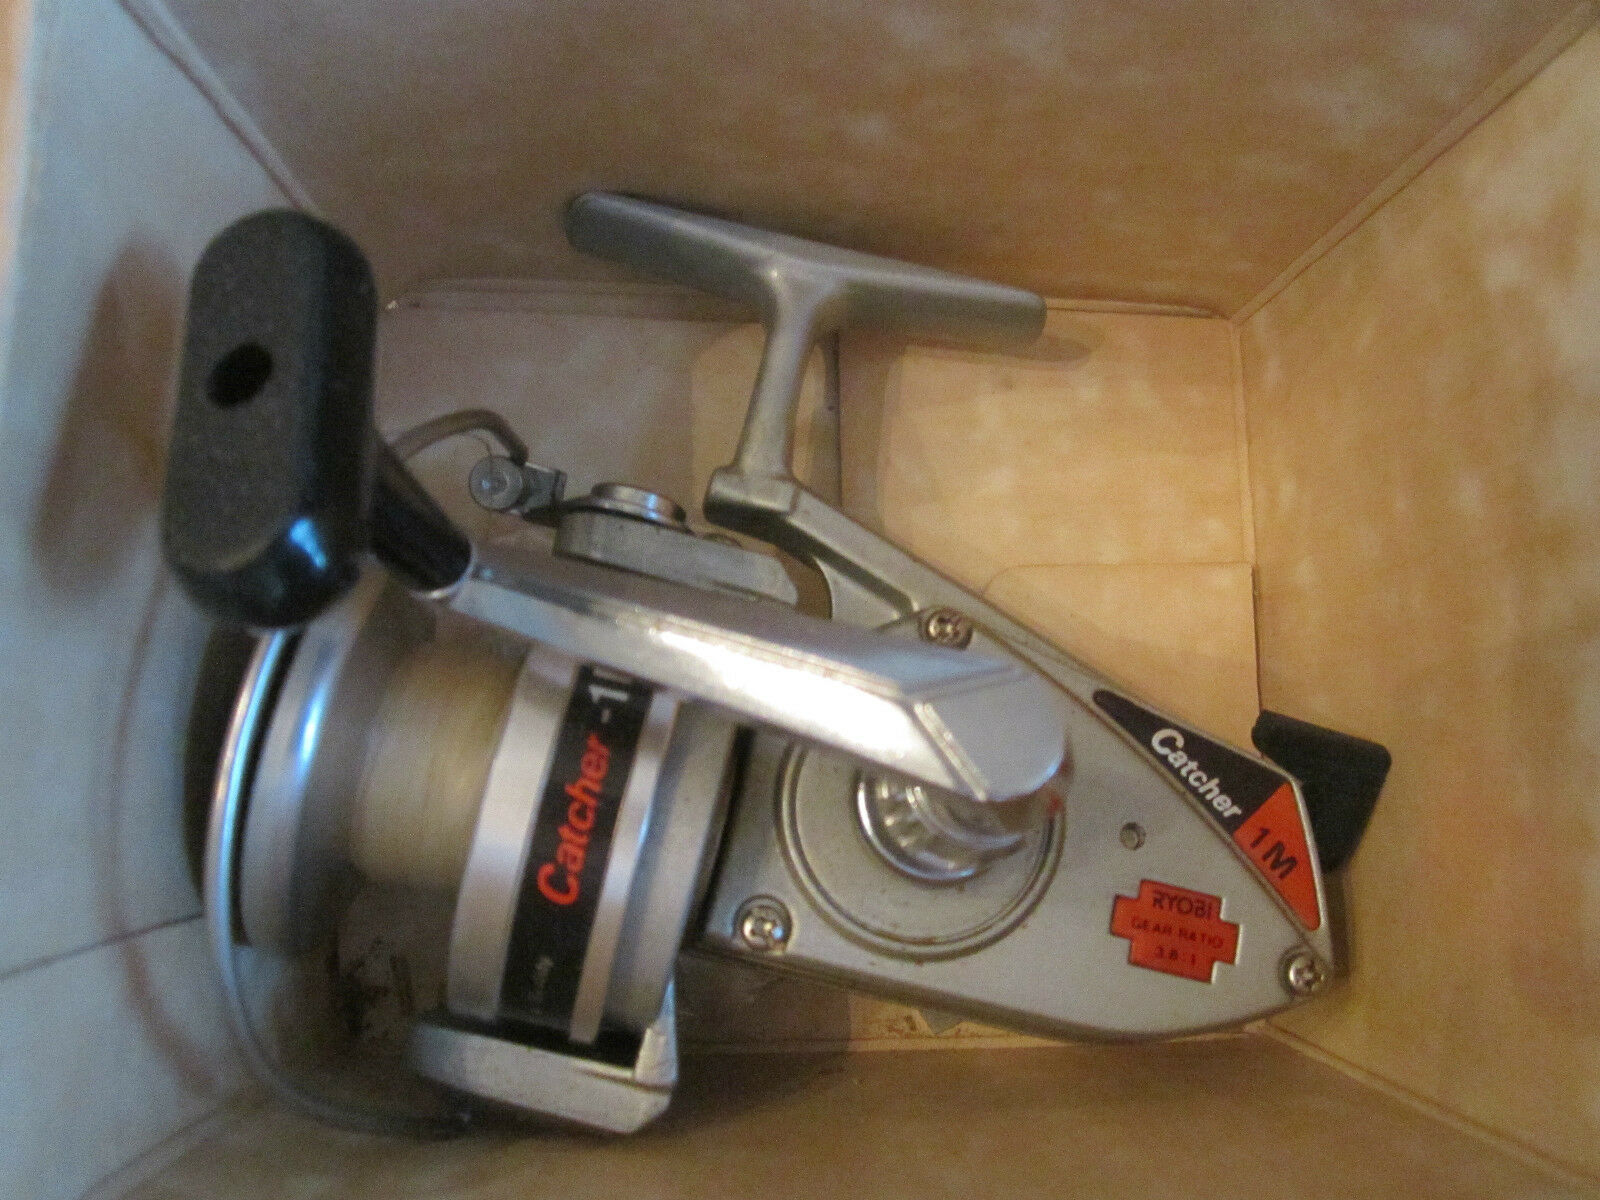 RYOBI CATCHER - 1M FISHING REEL - IN THE ORIGINAL BOX - WORKS GREAT - TUB T